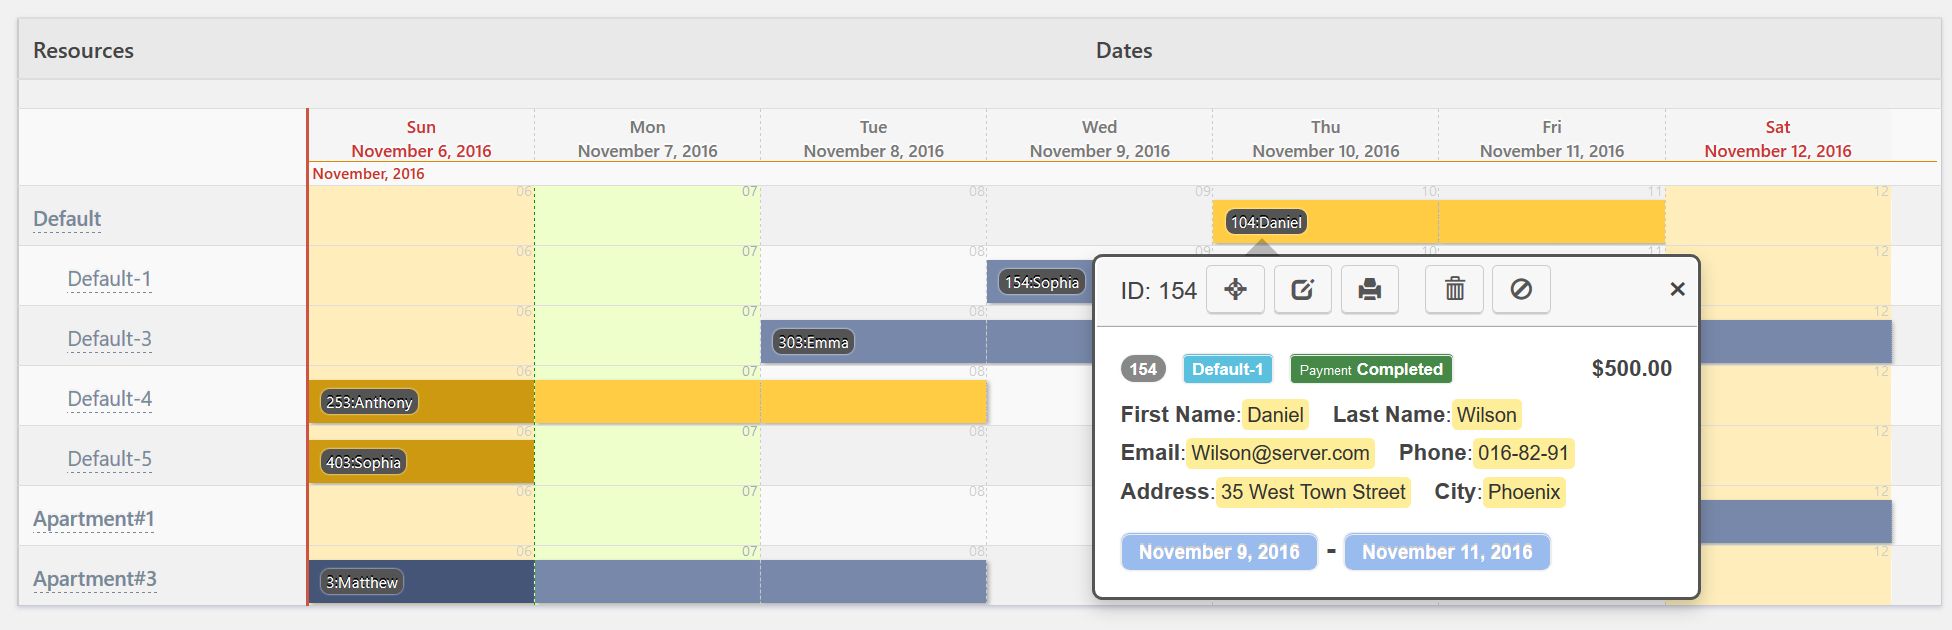 Booking Calendar – View and Manage user bookings | Booking